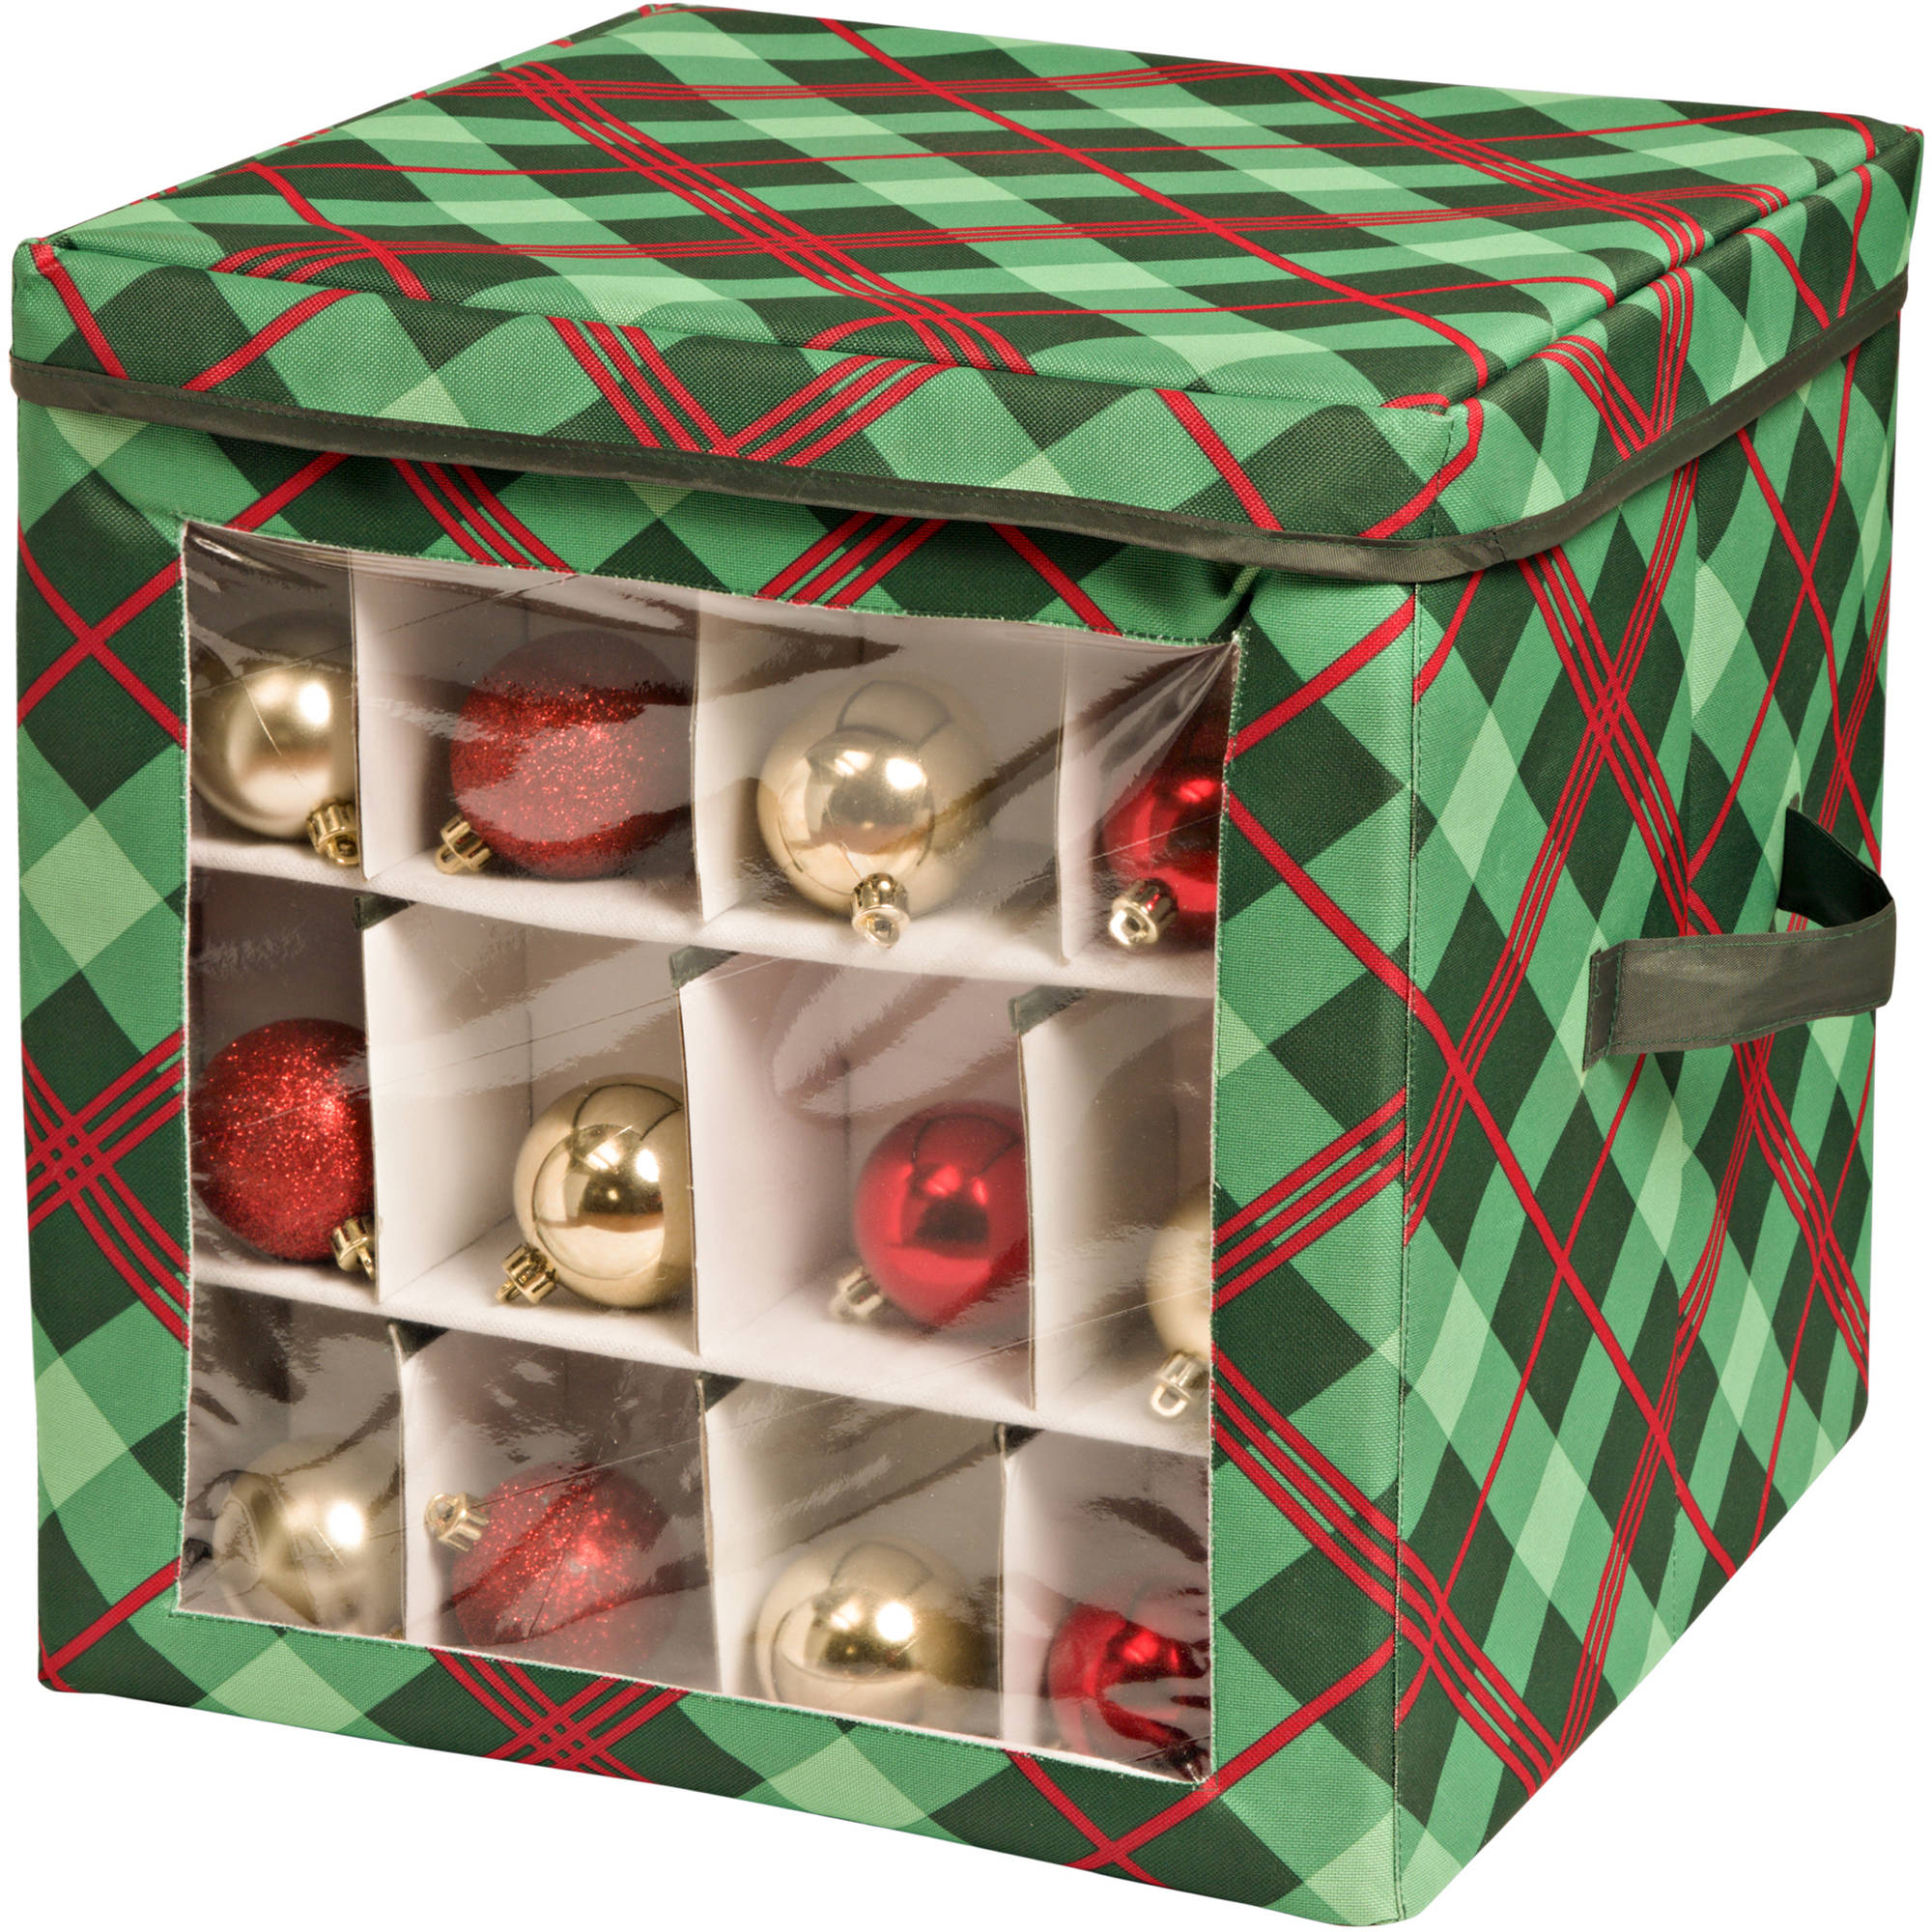 Honey Can Do Limited Edition Collapsible Plaid Ornament Storage Cube